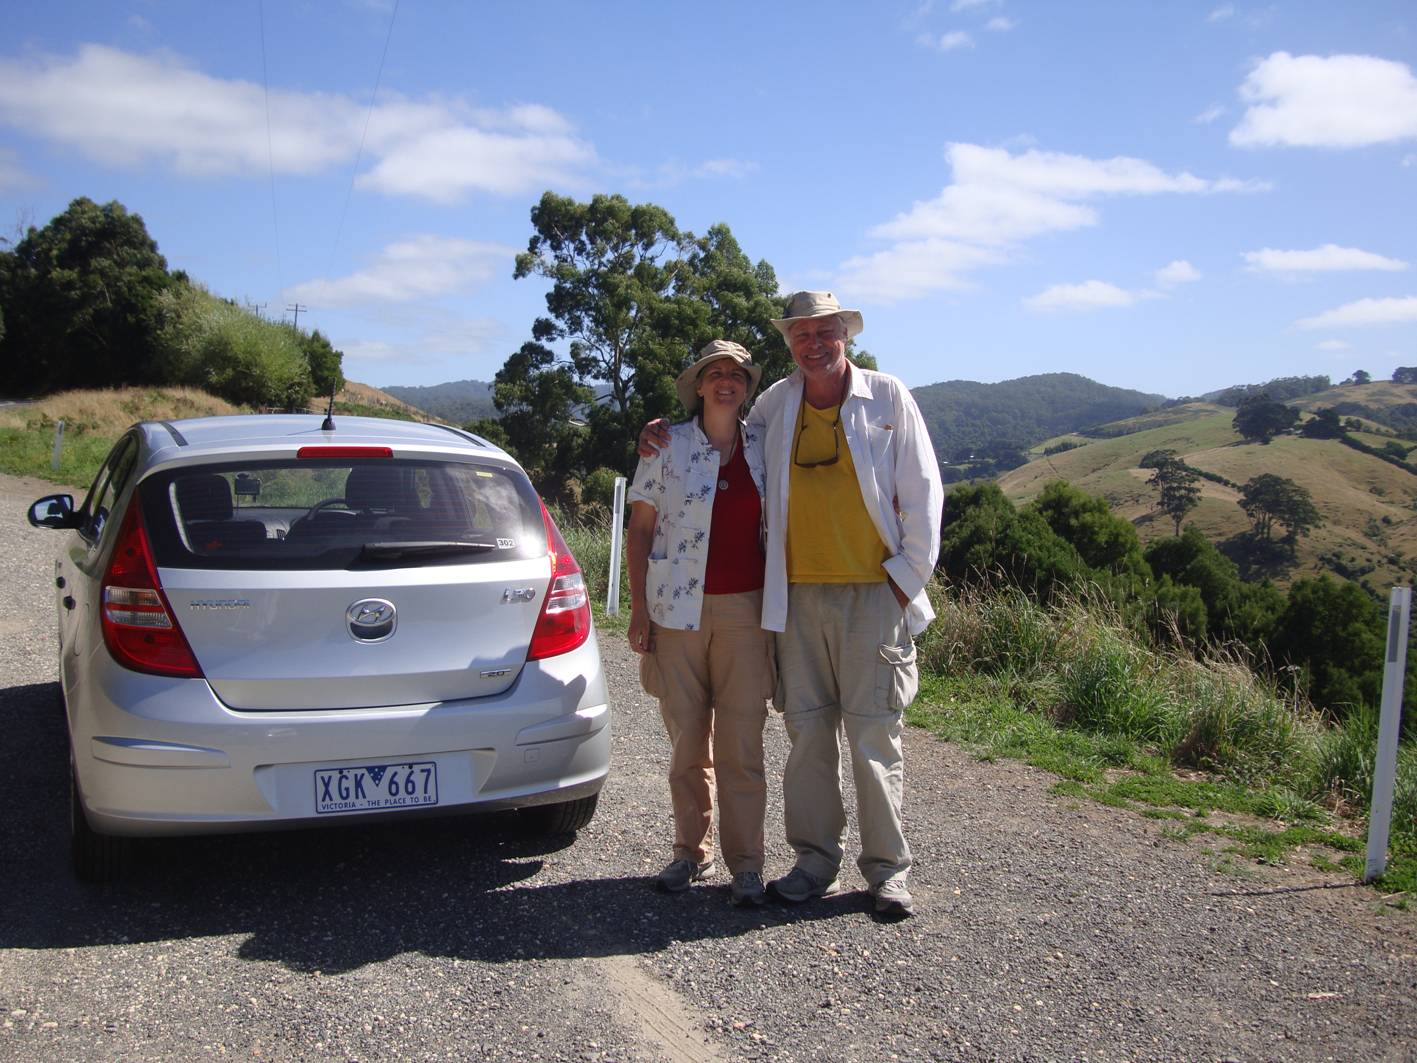 We rented a car for a few days of driving down the Great Ocean Highway.  Australia.